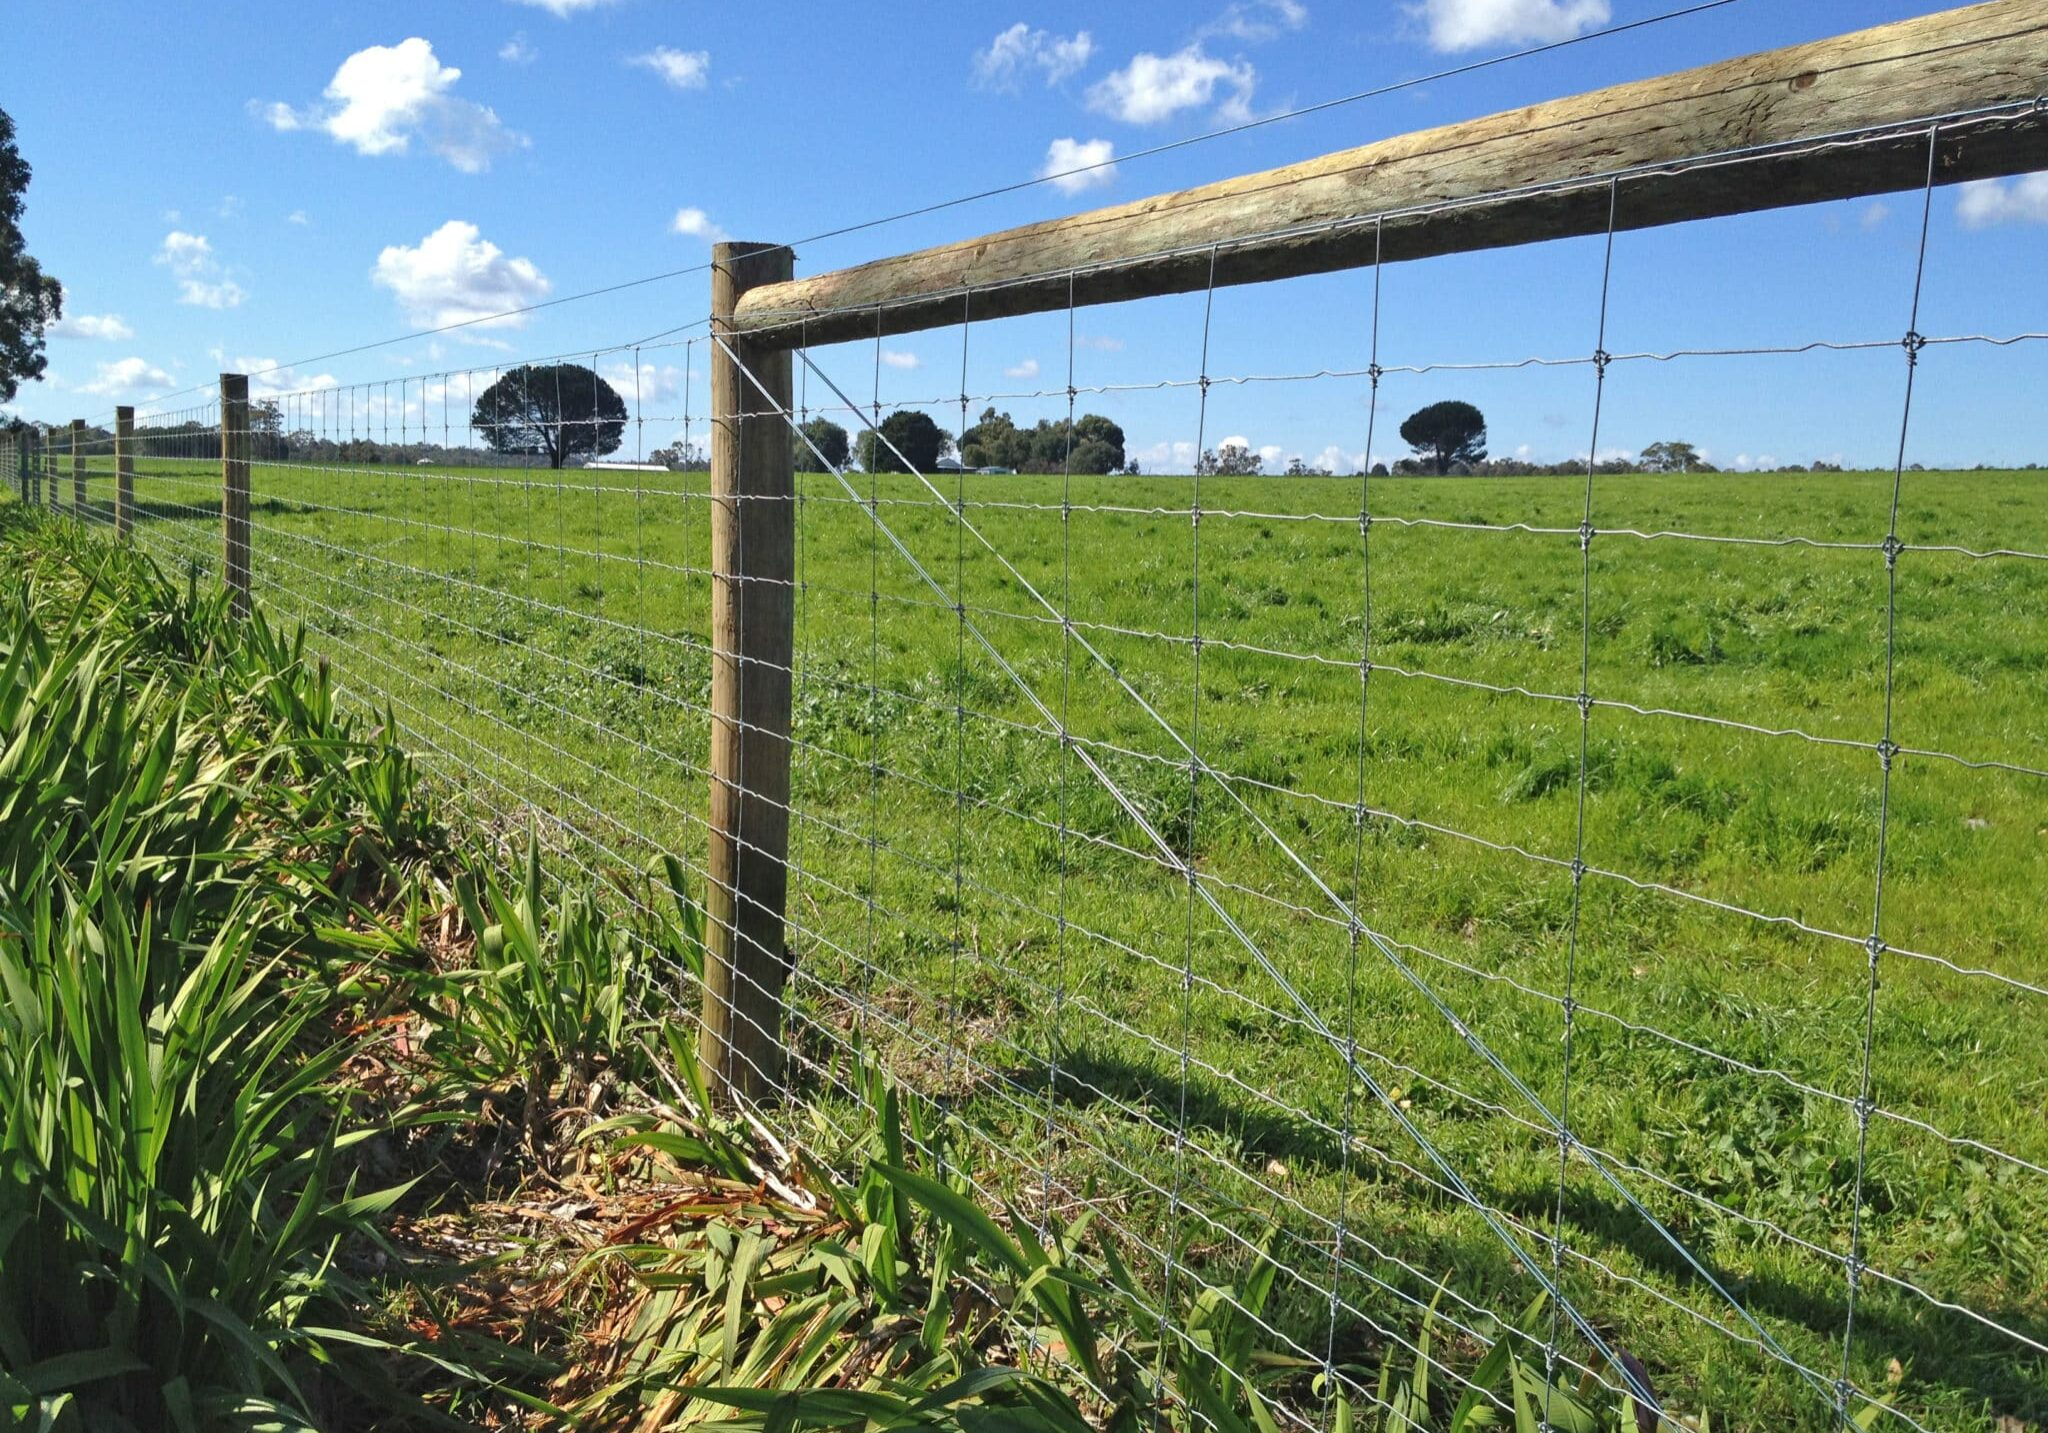 Bull Barn Fence Factory fixed knot wire fencing